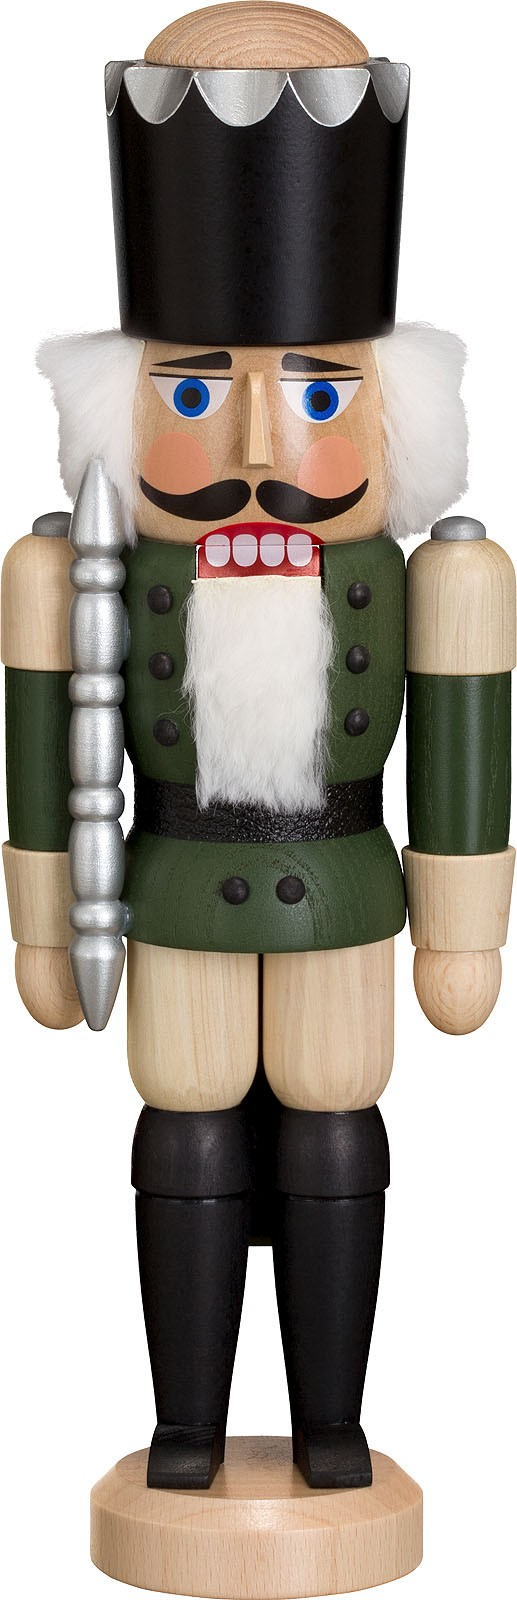 nutcracker king, ash tree glazed, green